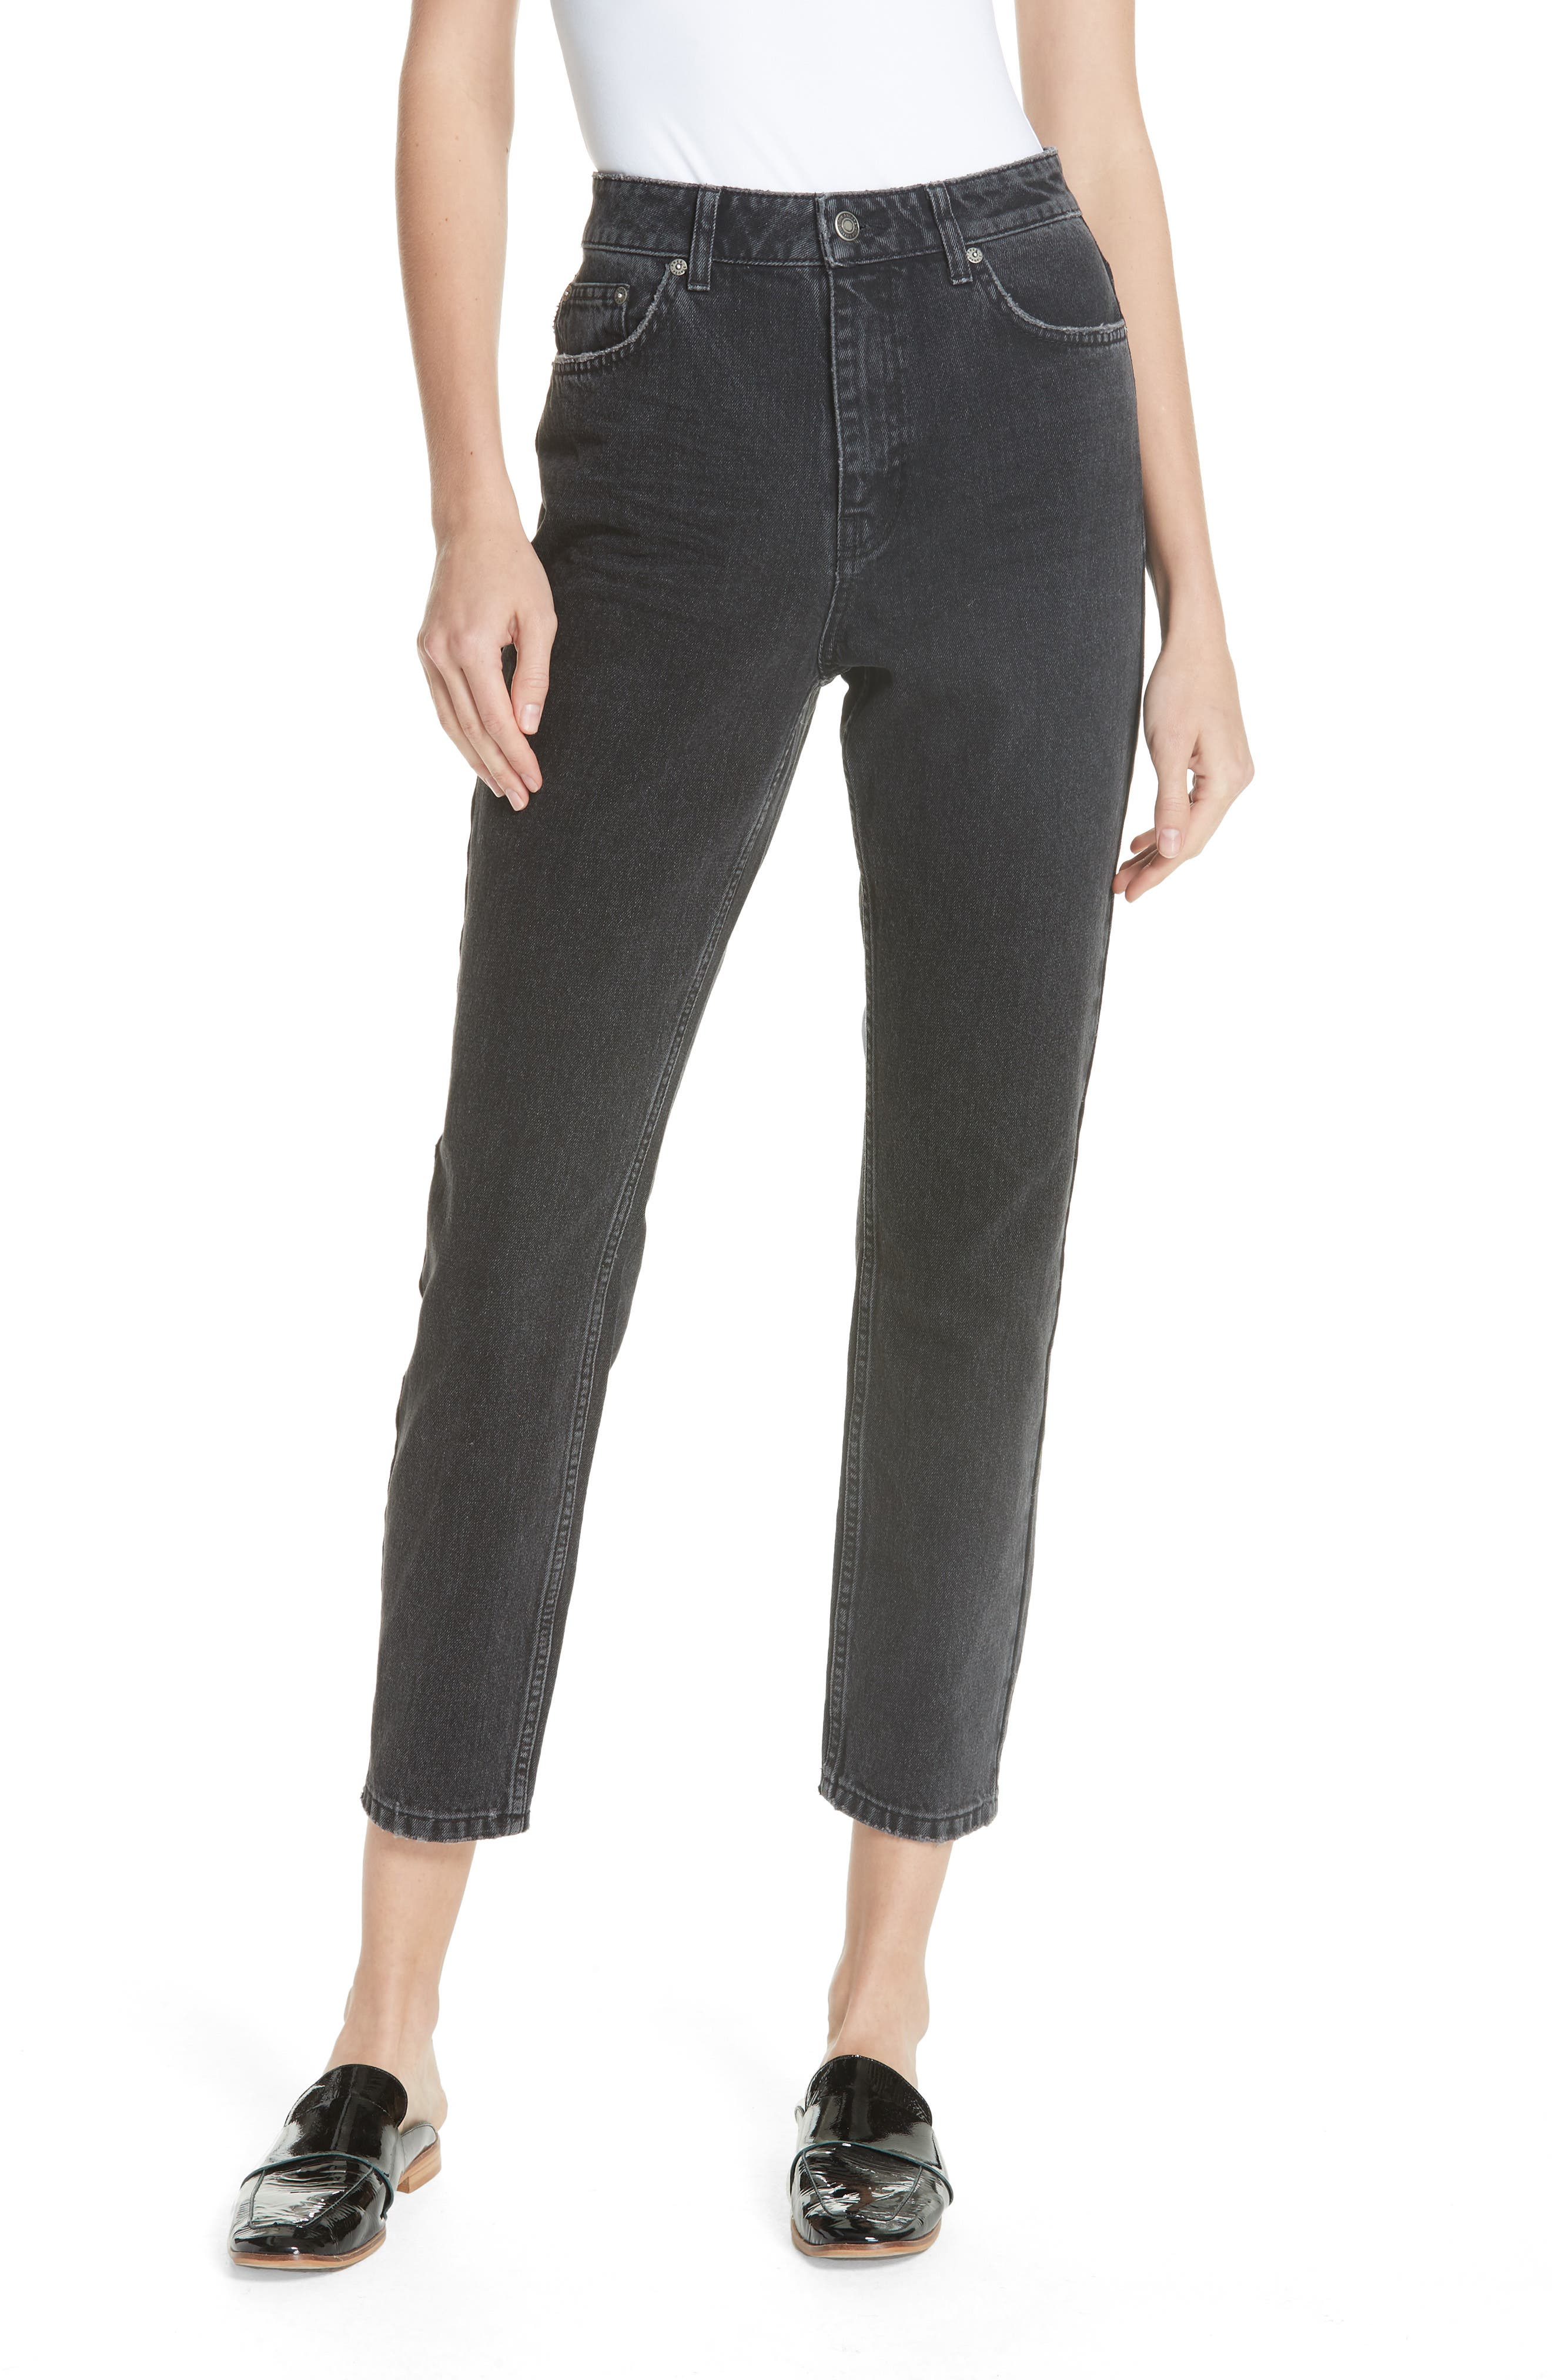 FREE PEOPLE We the Free by Free People Mom Jeans, Main, color, 001